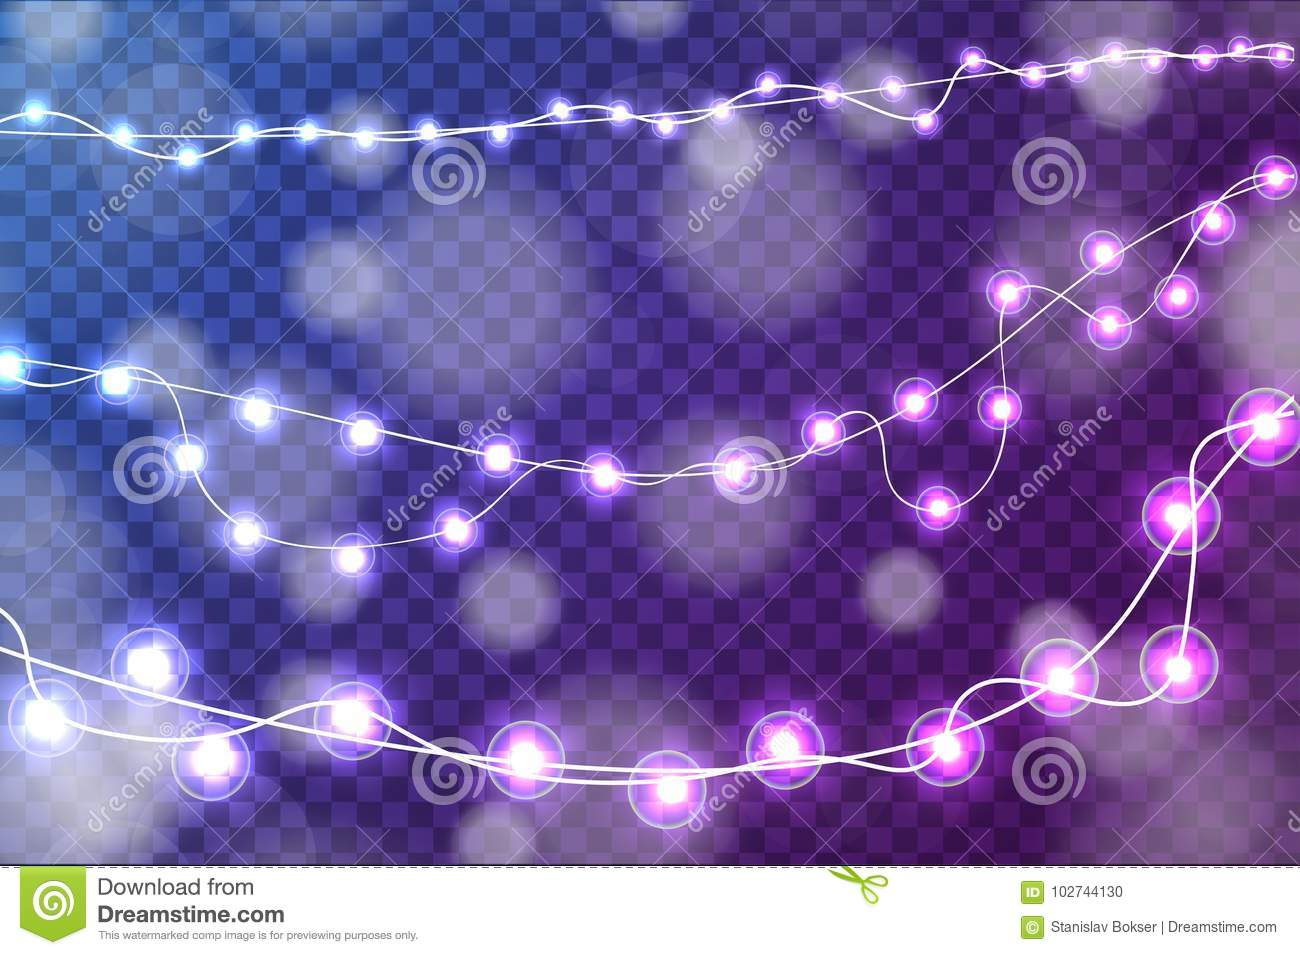 download realistic christmas lights decorations set isolated on transparent blue and purple background stock vector